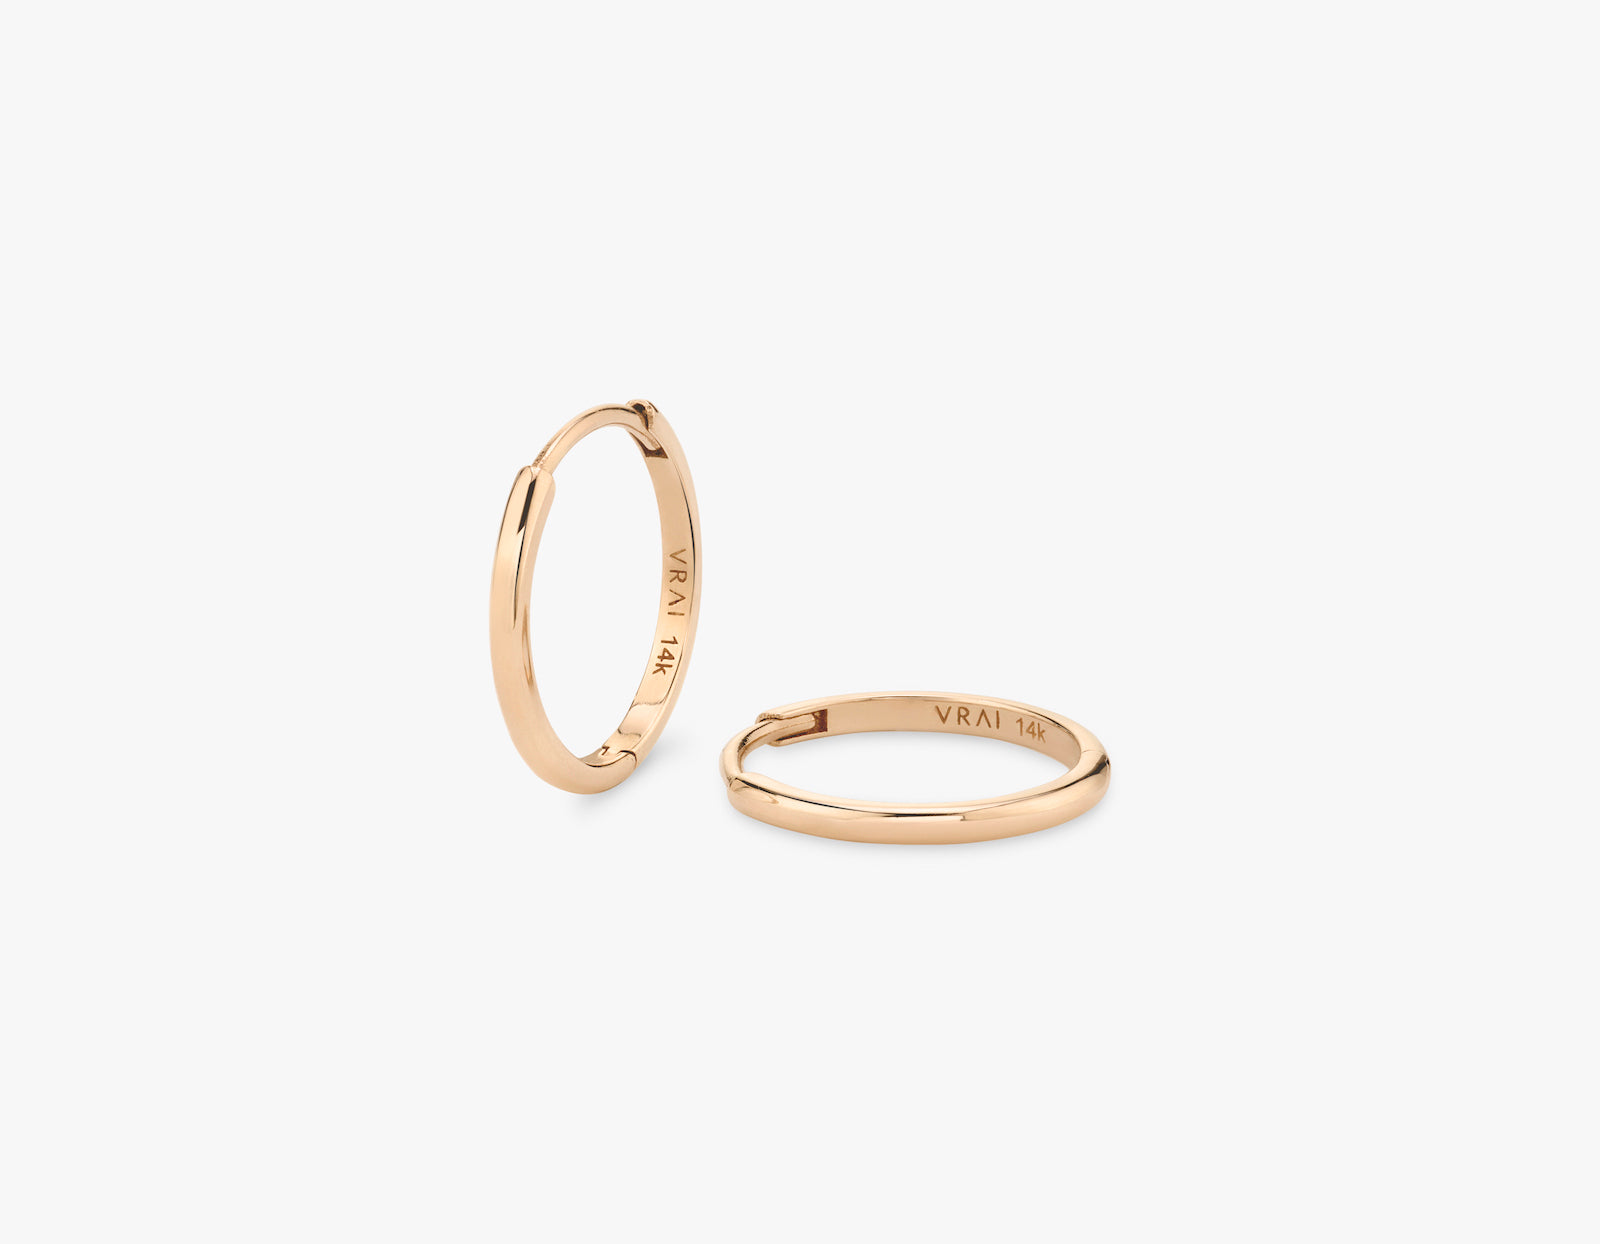 Vrai 14k solid gold simple minimalist Huggie Hoops earrings, 14K Rose Gold